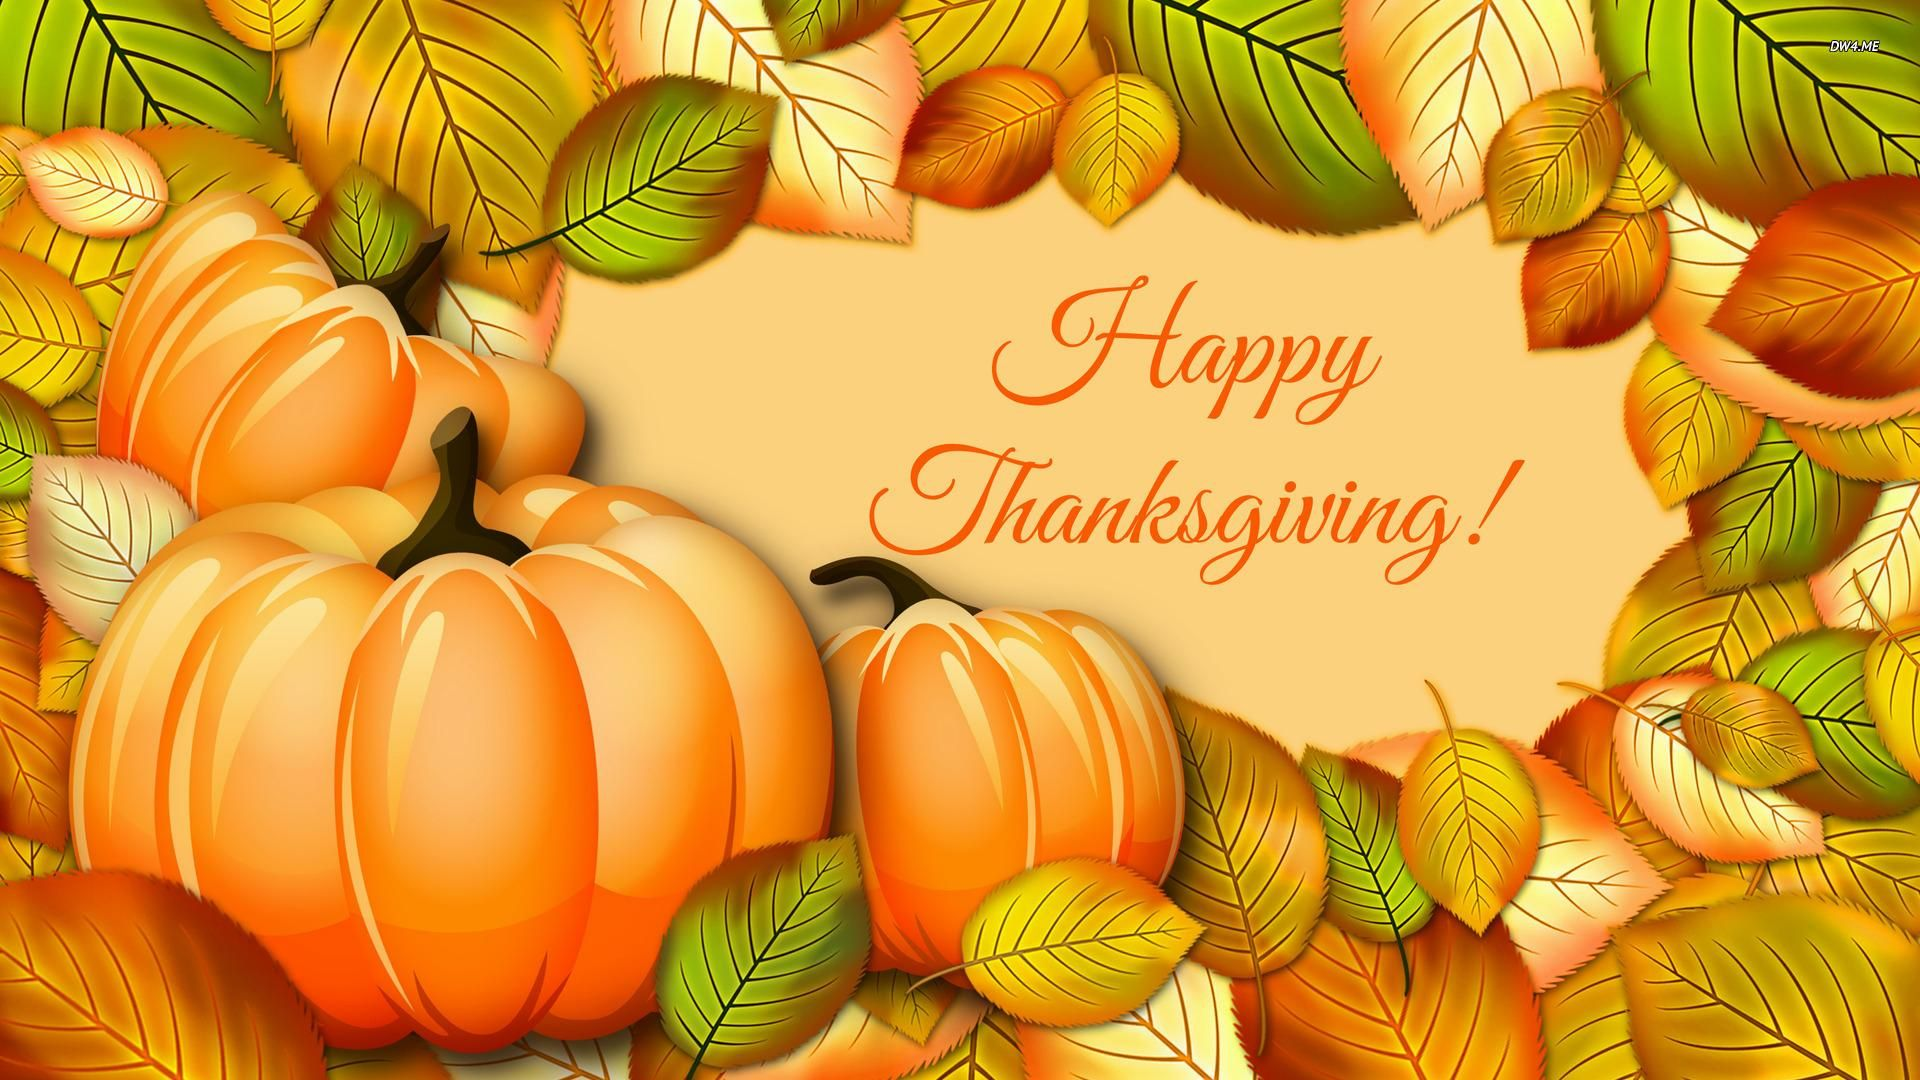 Thanksgiving Wallpaper For Desktop 1920 1080 Thanksgiving Desktop Wallpapers 52 Wall Happy Thanksgiving Wallpaper Happy Thanksgiving Day Thanksgiving Pictures